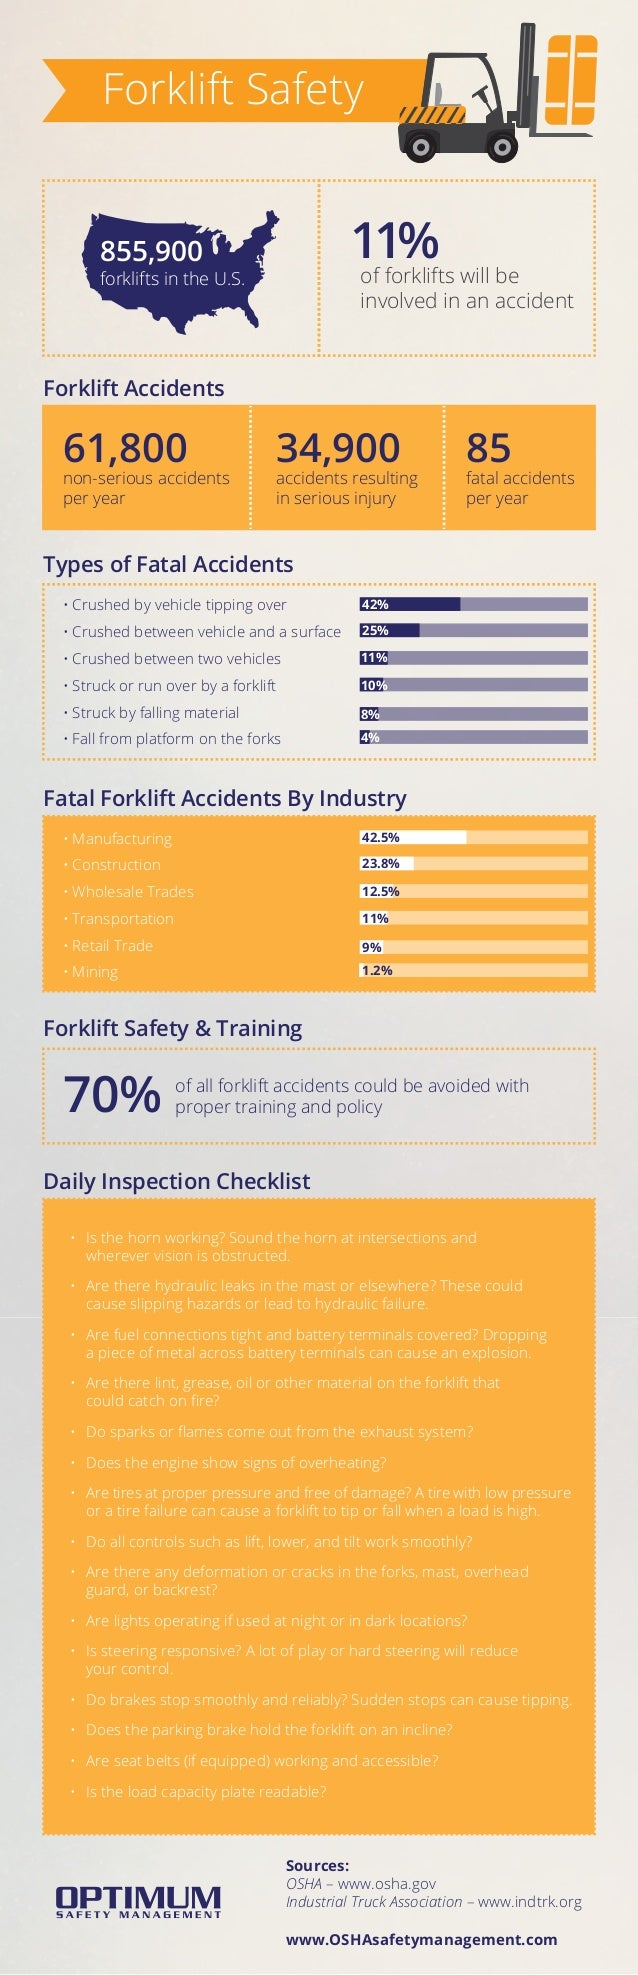 Forklift Safety of forklifts will be involved in an accident 11% of all forklift accidents could be avoided with proper tr...